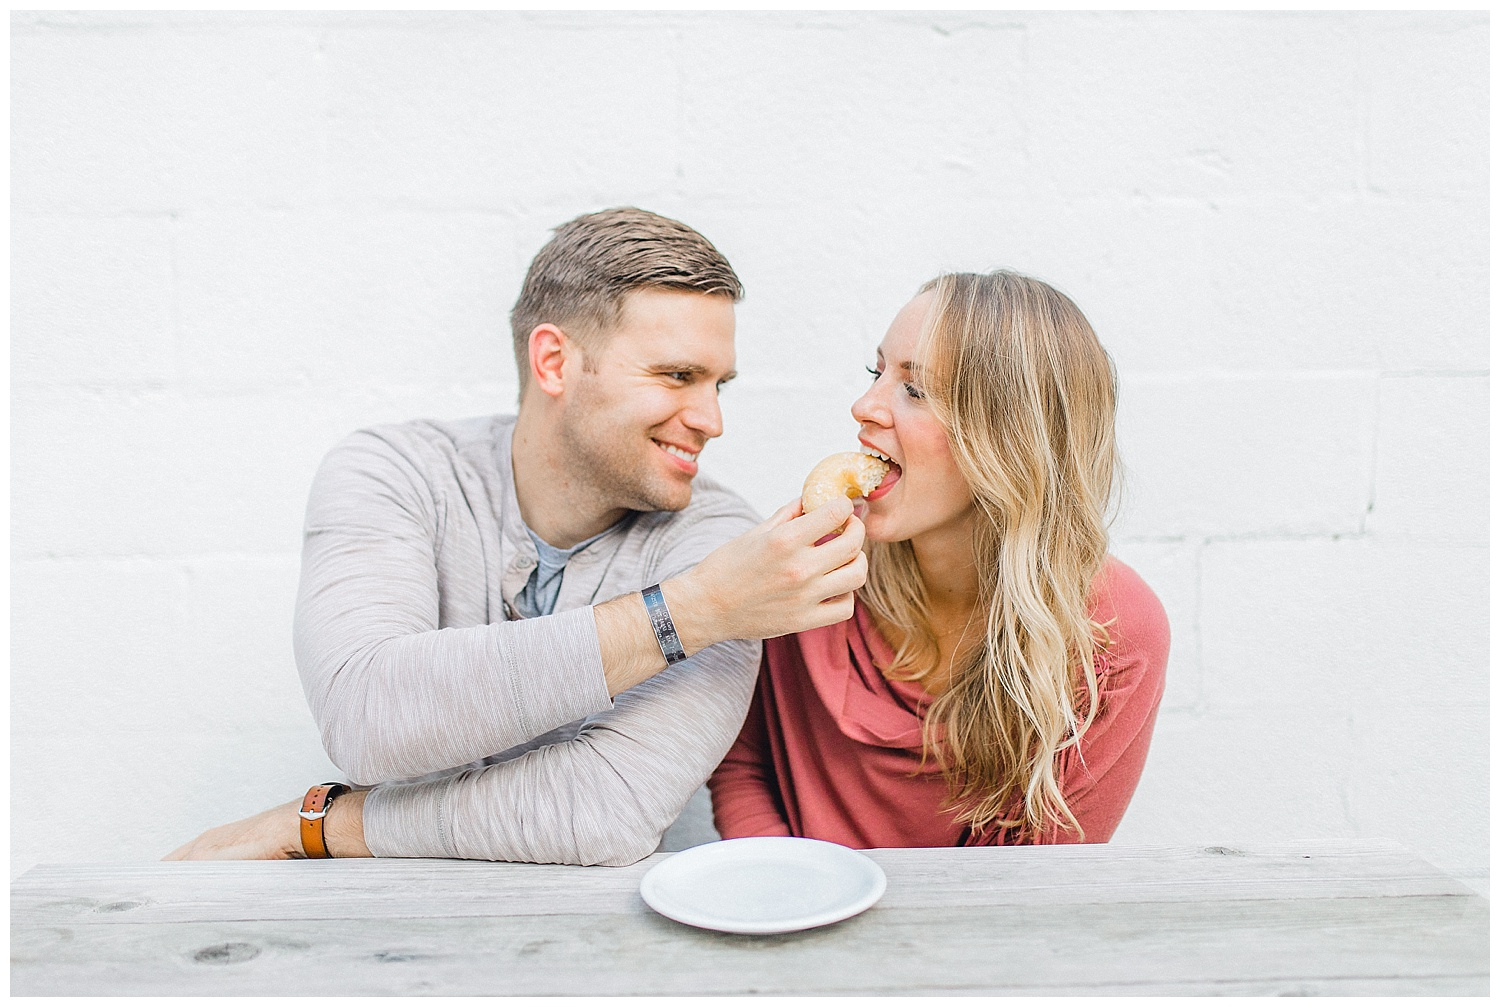 ERC_0838_Downtown Nashville Engagement Session at Barista Parlor | Emma Rose Company Wedding Photographer | Outfit Inspiration for Engagement Session | Kindred Light and Airy Photographer.jpg